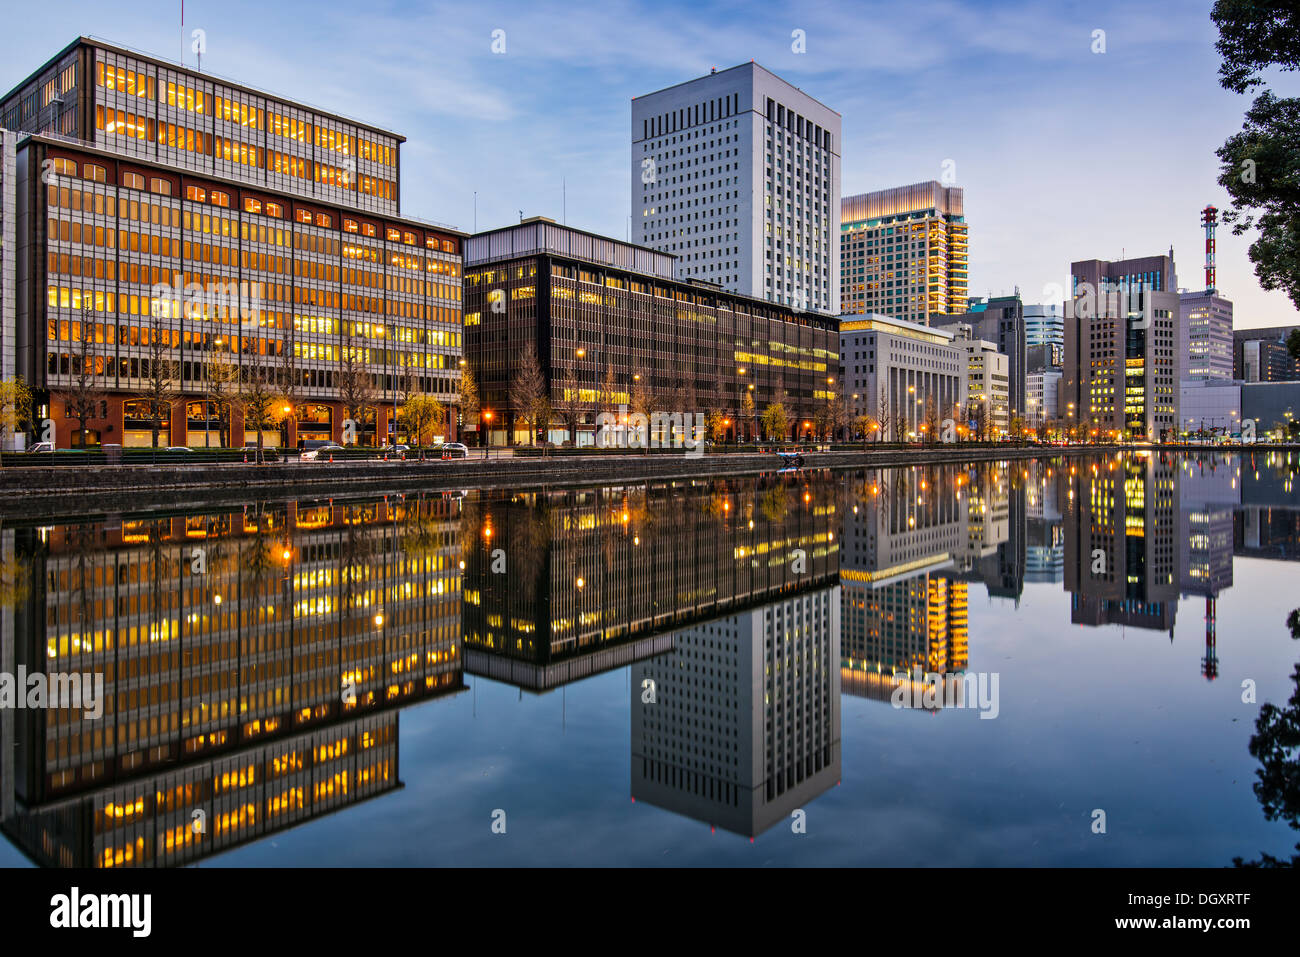 Marunouchi, Tokyo, Japan buildings reflect on the Imperial Palace moat. - Stock Image